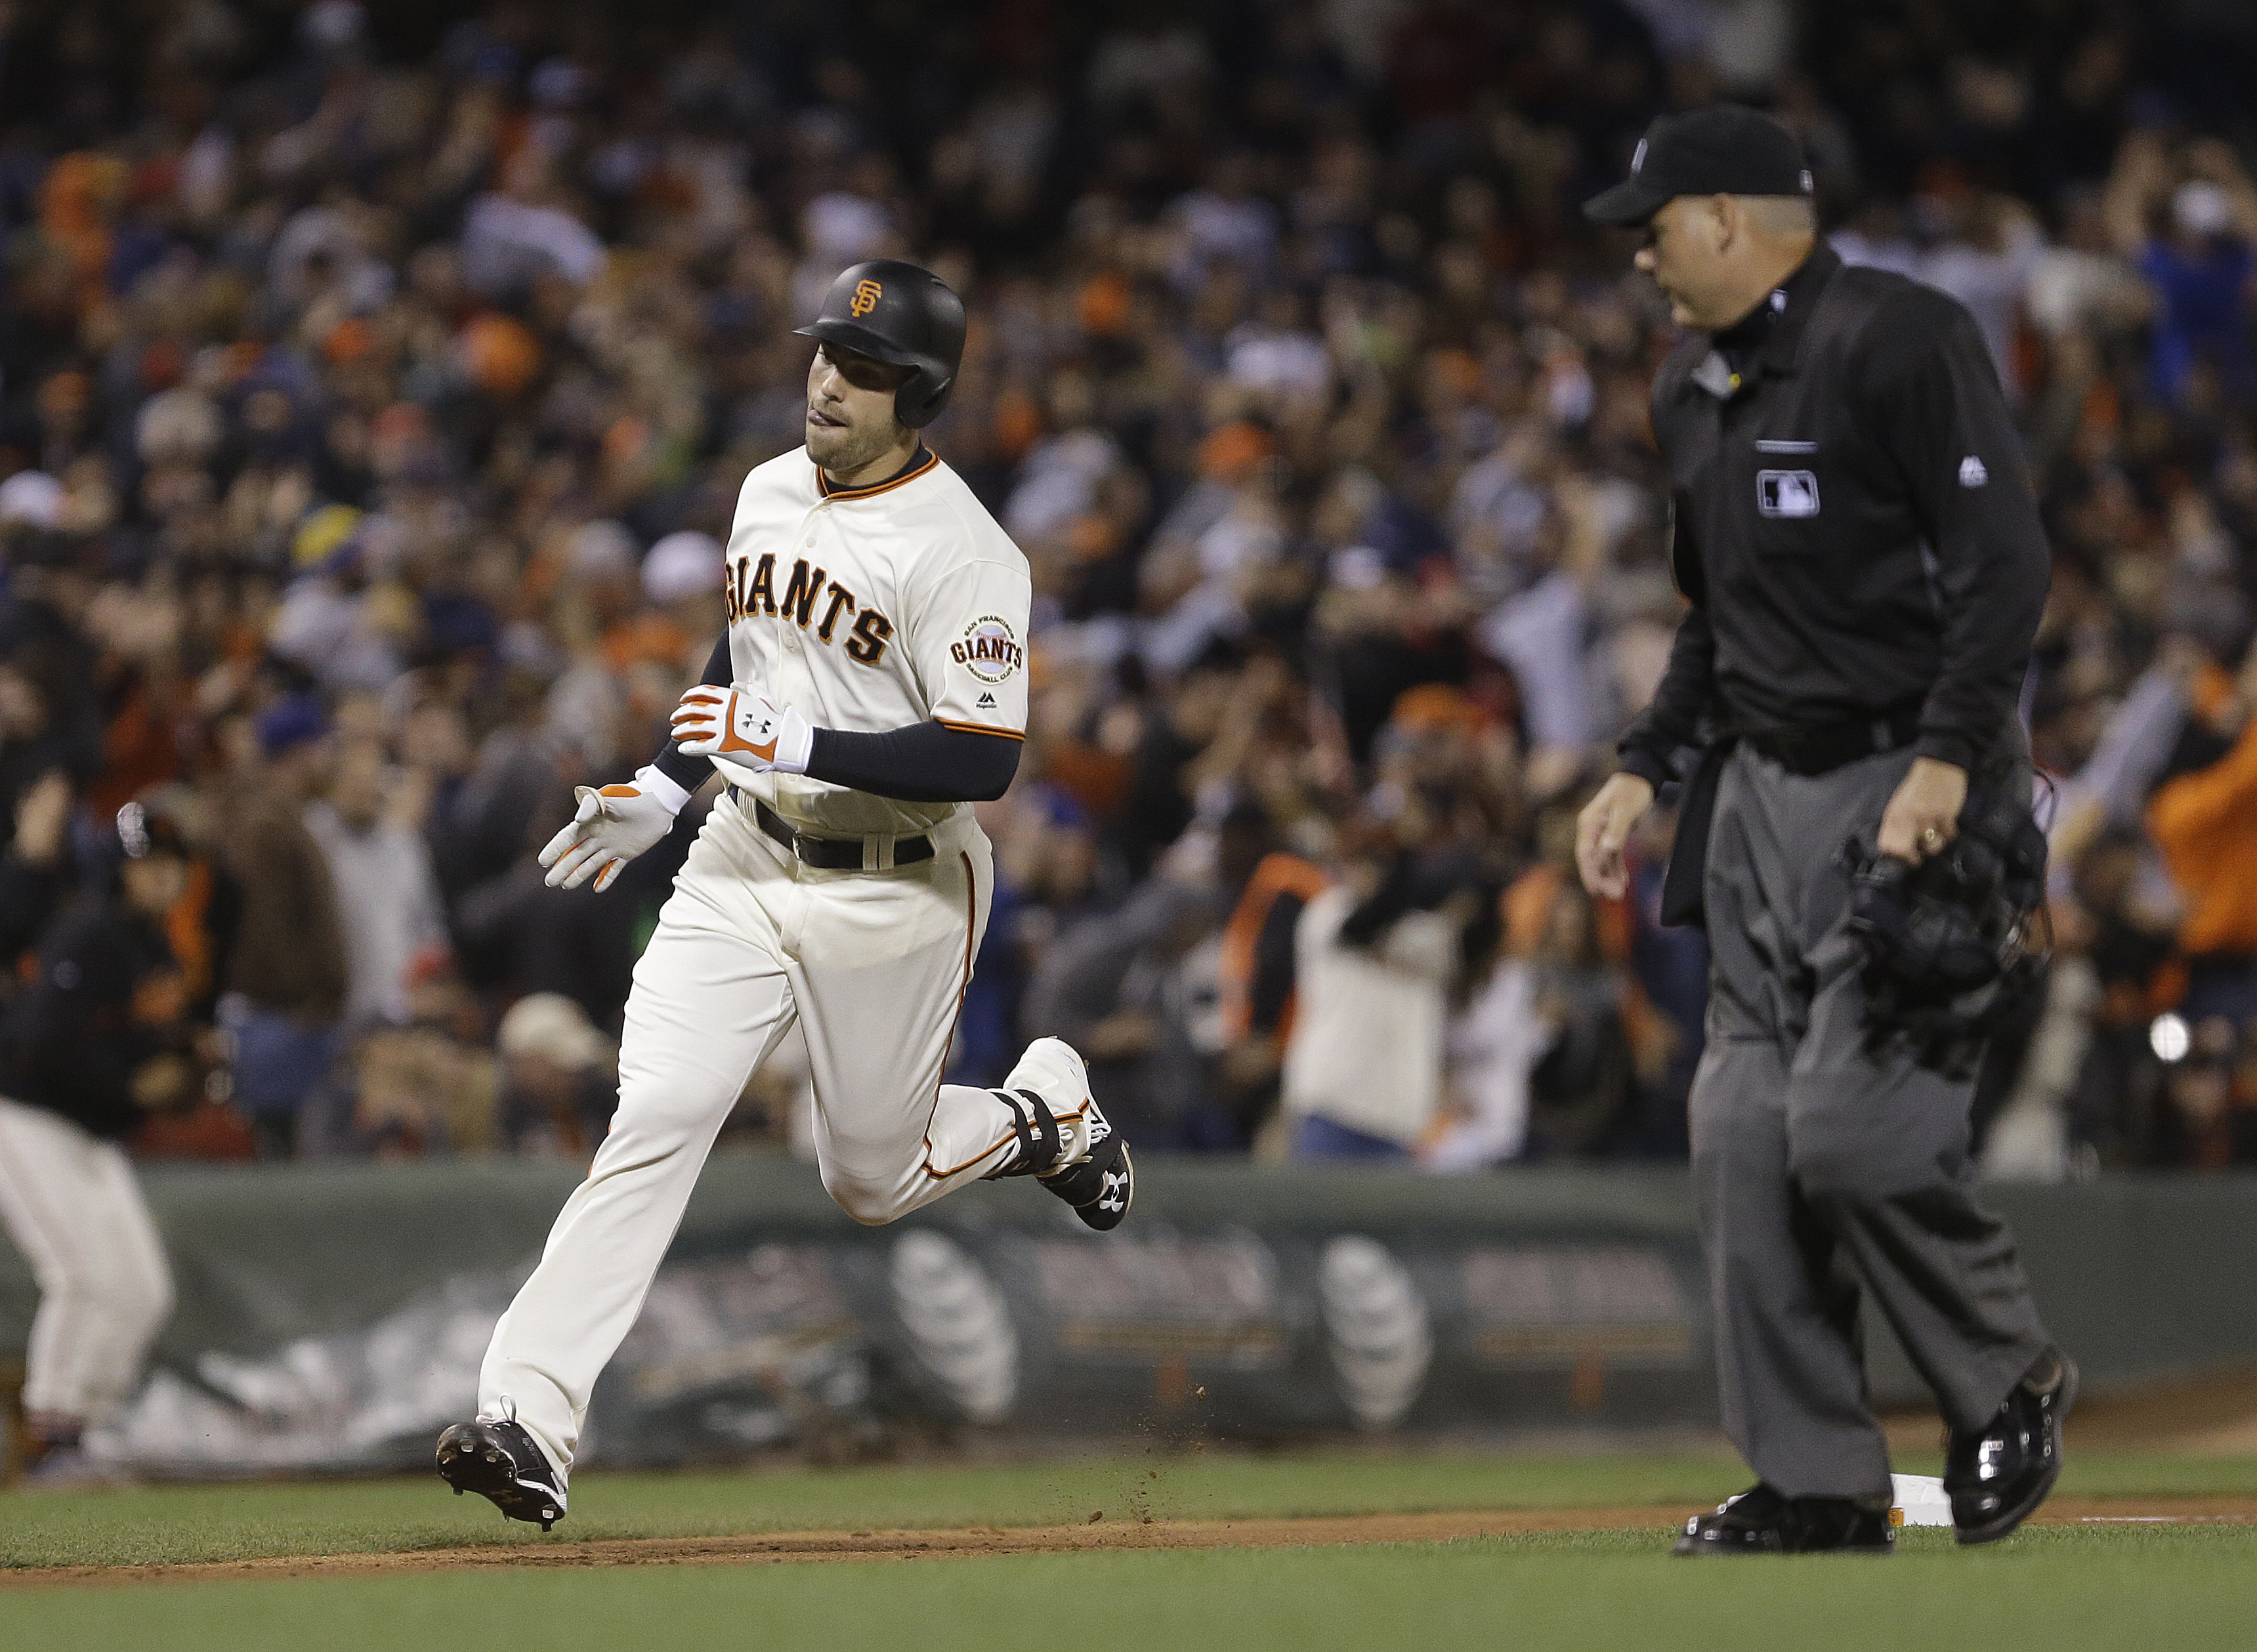 San Francisco Giants' Mac Williamson, left, runs the bases after hitting a home run against the Boston Red Sox during the eighth inning of a baseball game Wednesday, June 8, 2016, in San Francisco. (AP Photo/Ben Margot)